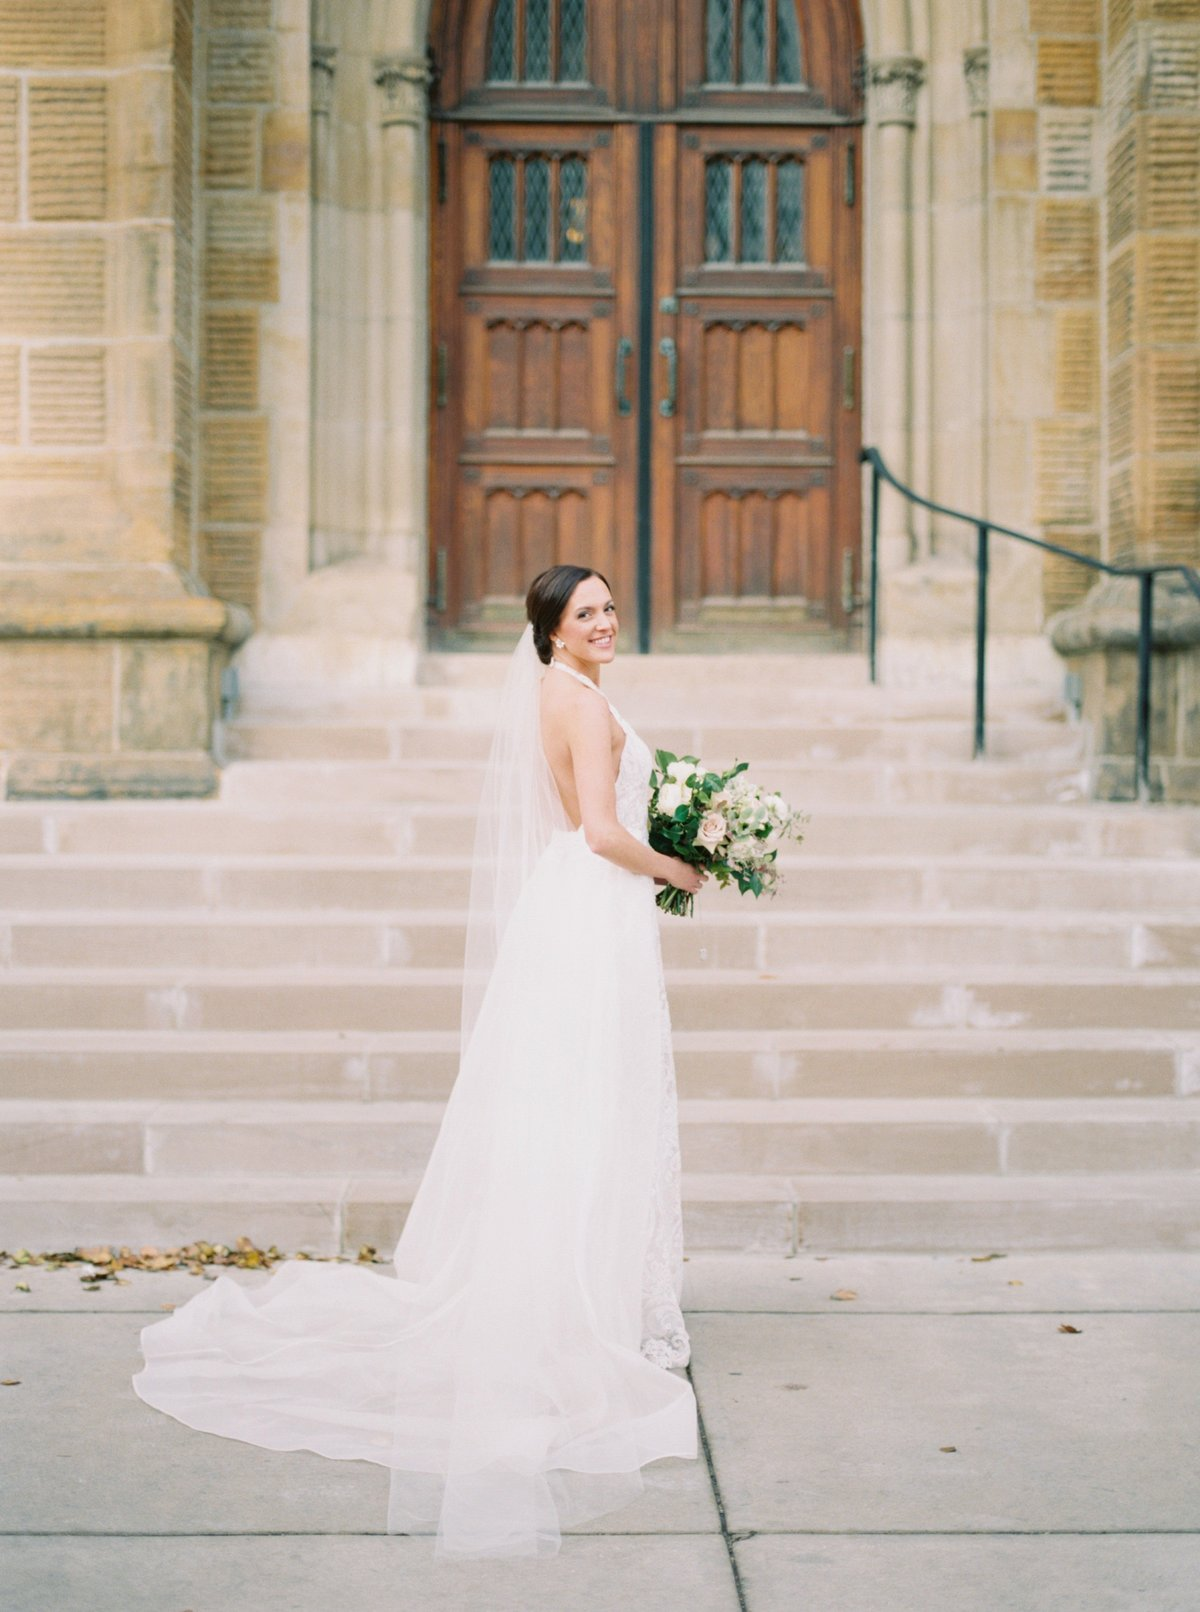 nicoleclareyphotography_kelly+matt_columbus_wedding_0003